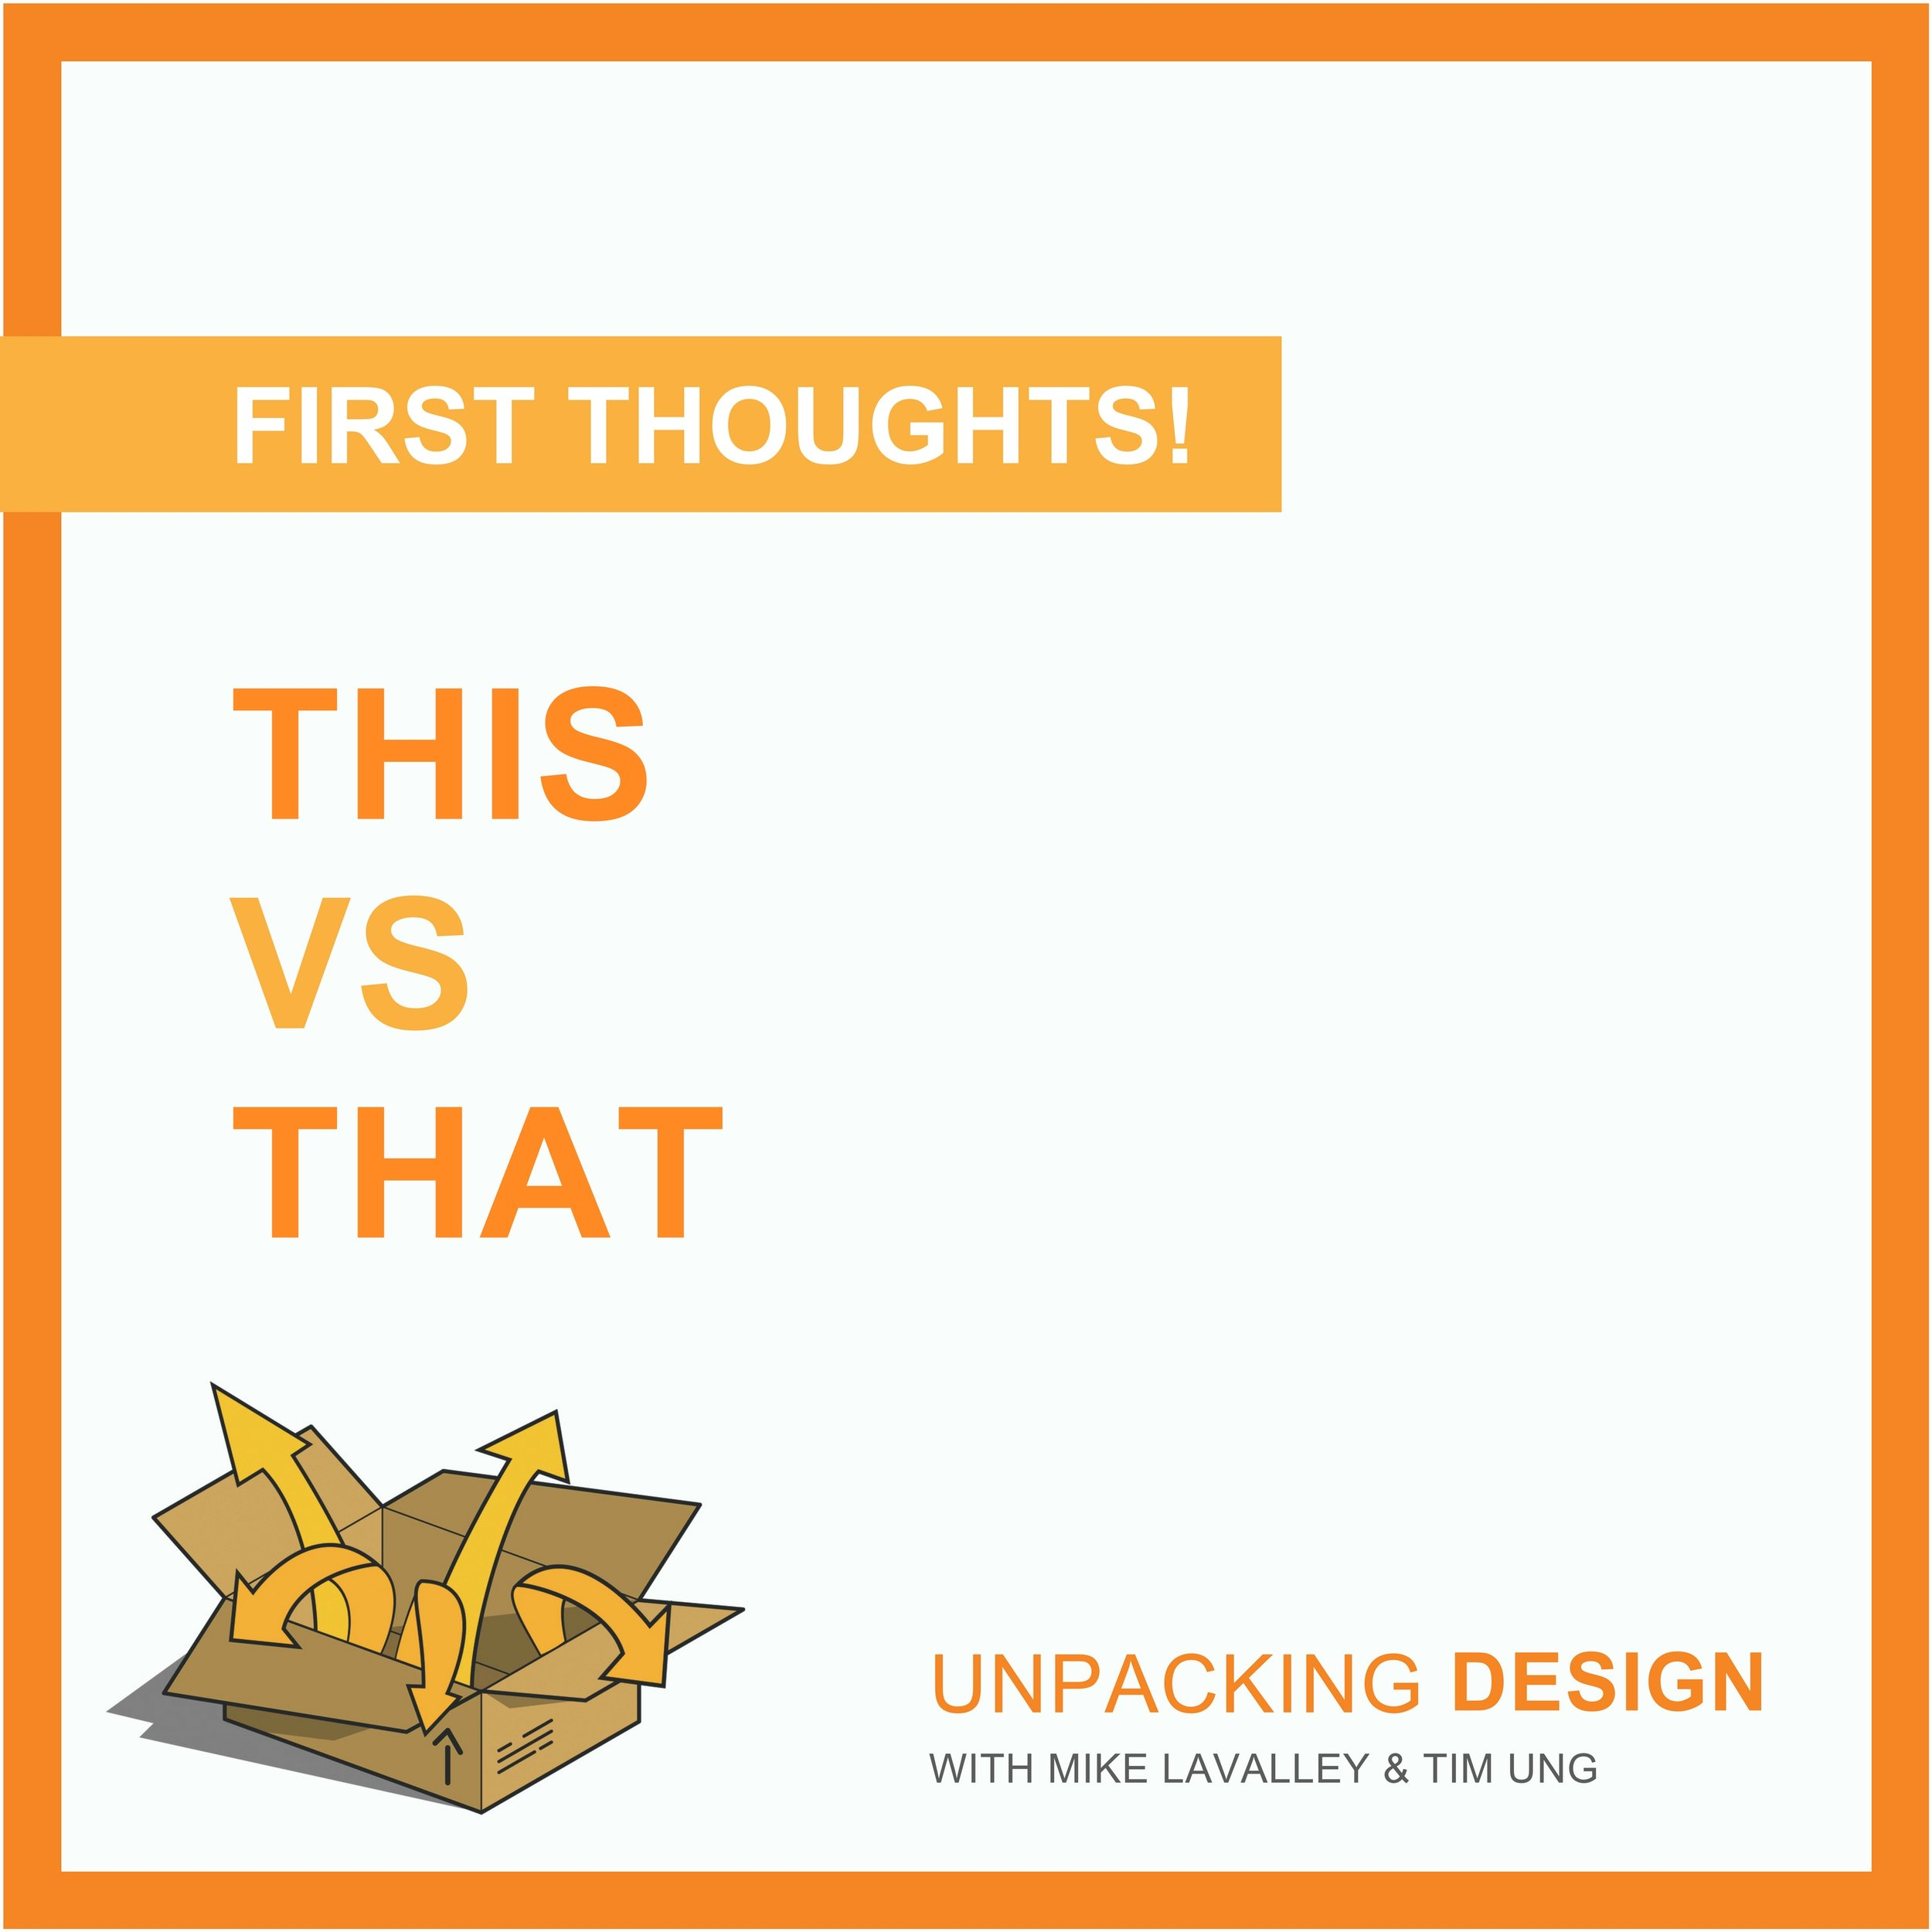 unpacking design - first thoughts template.jpg